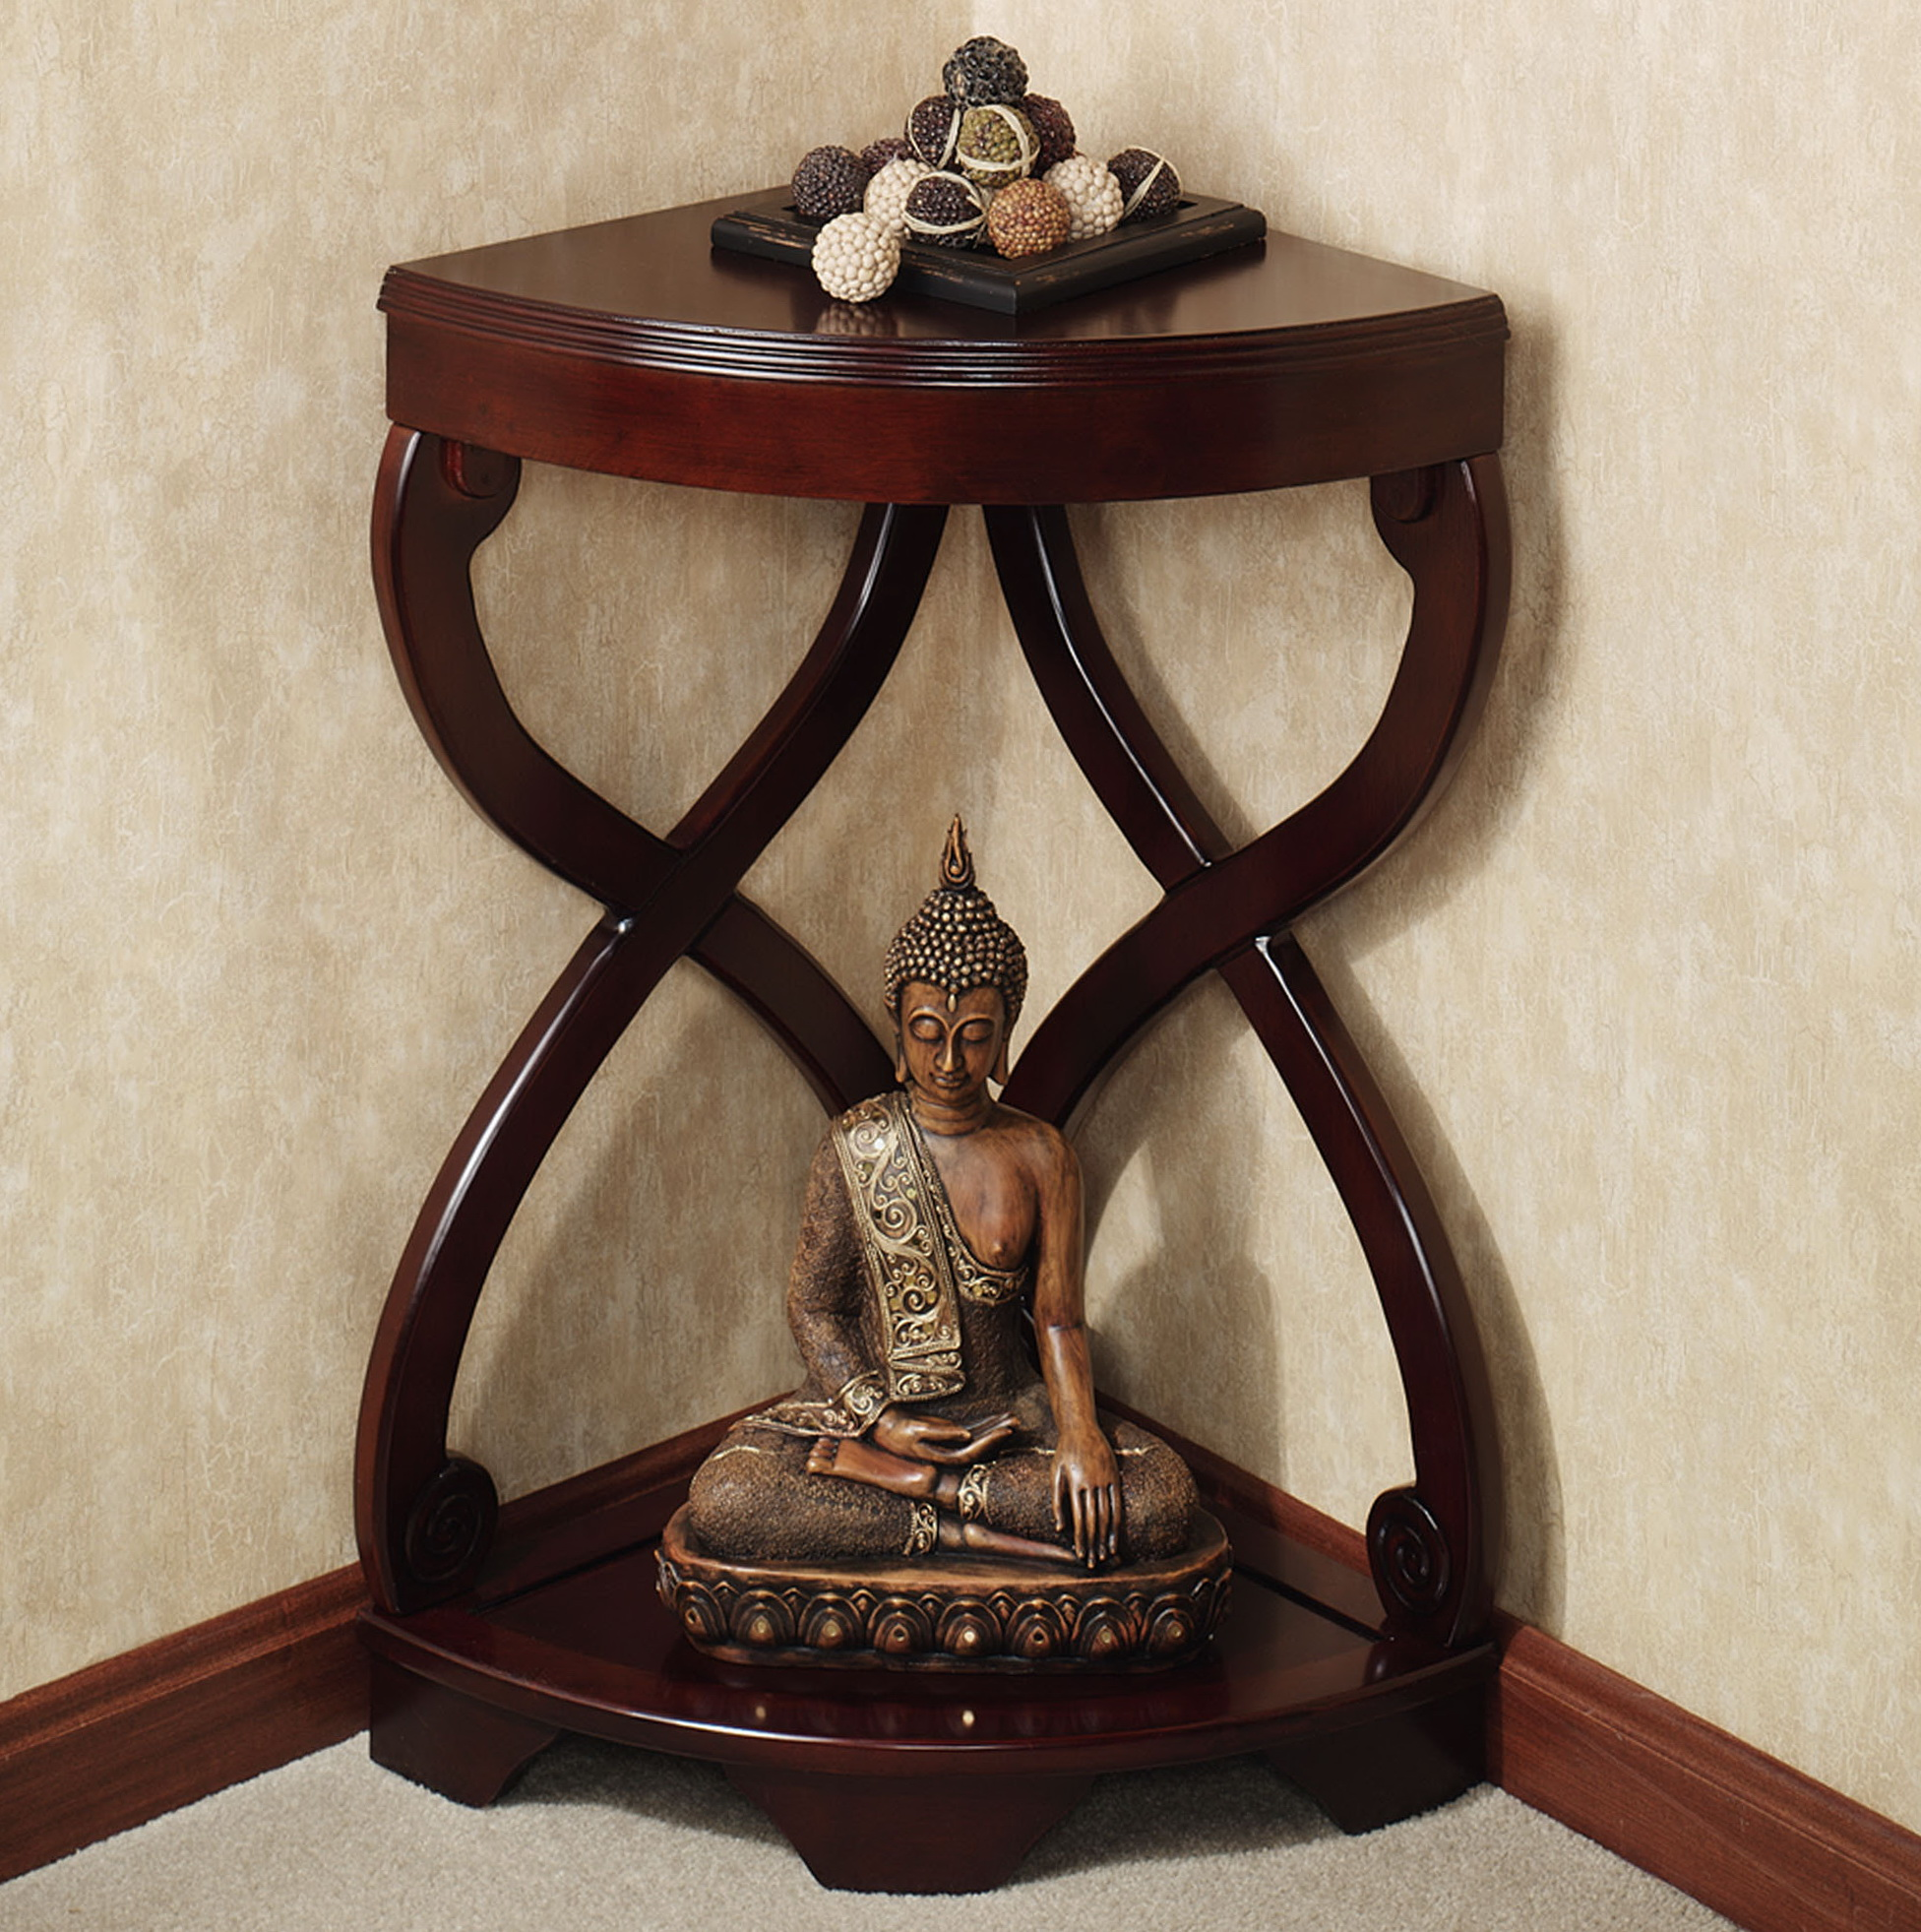 small corner table with shelves designs decor theme cross frames wooden varnishing top shelf base open single buddha statue colorful ball ornament black storage accent home